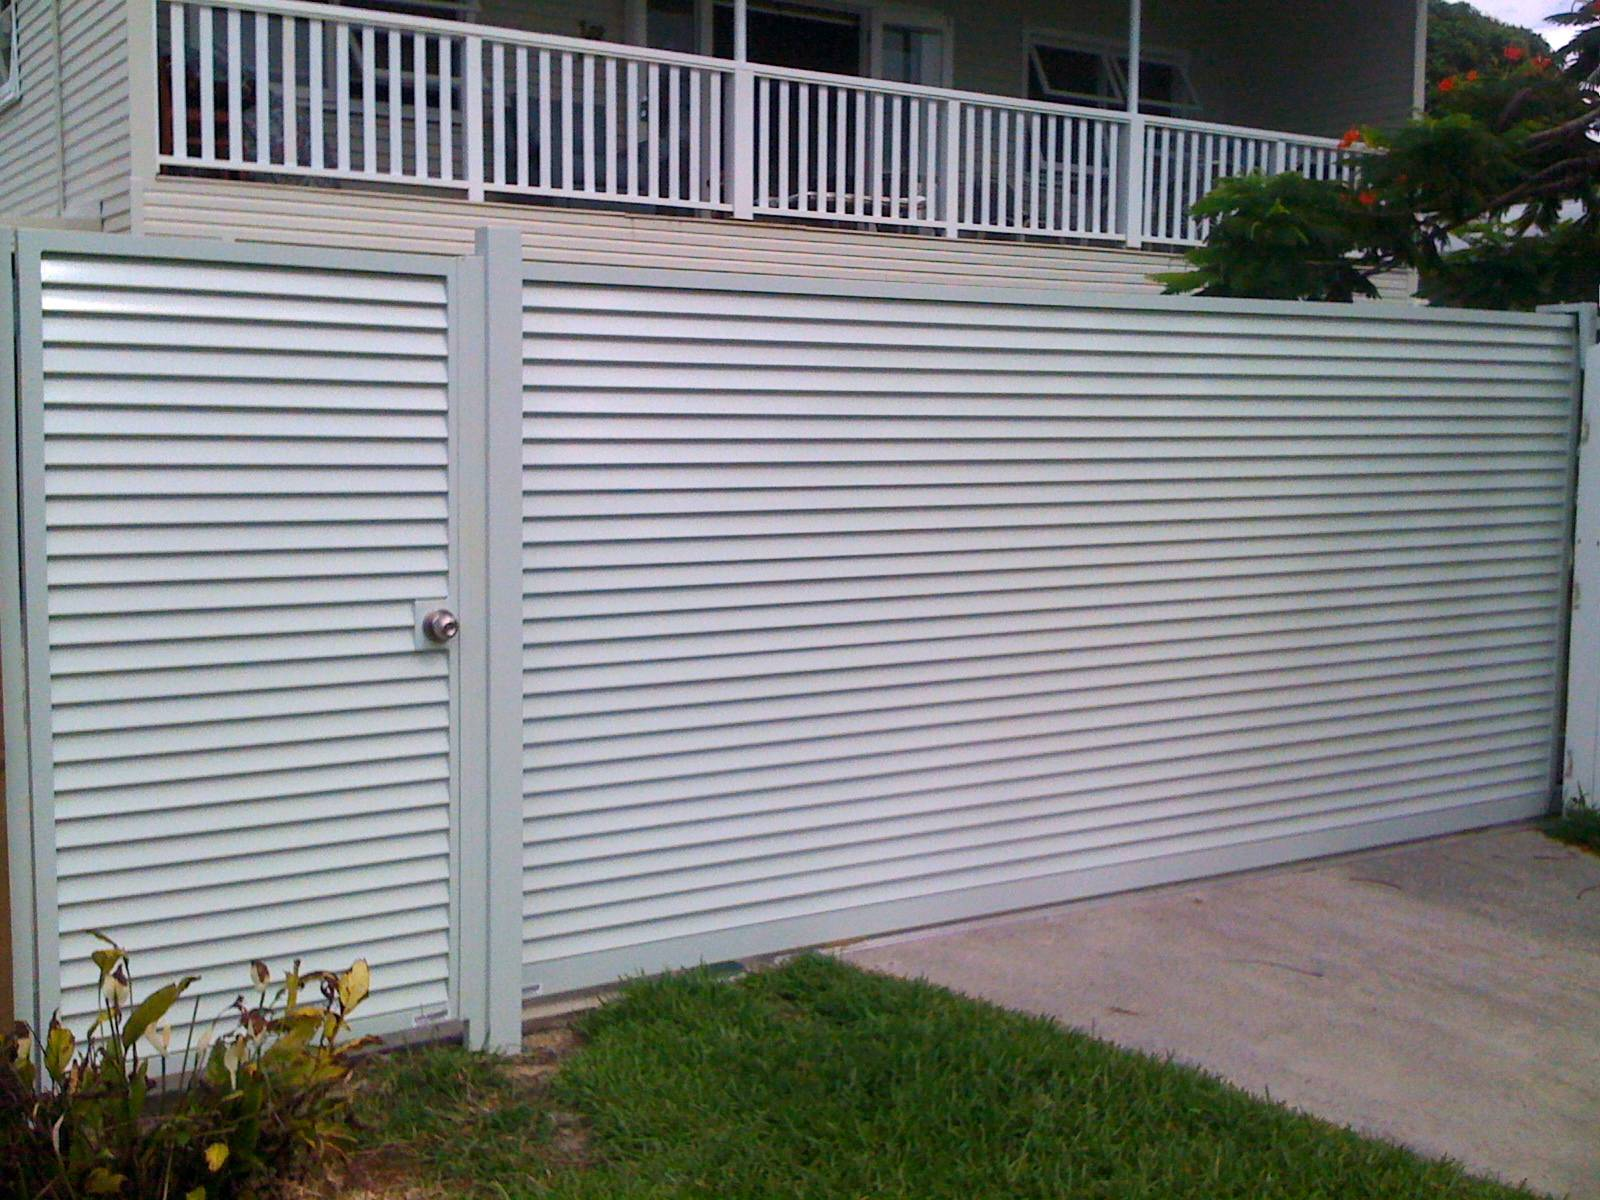 Horizontal louvred gate and fence panels